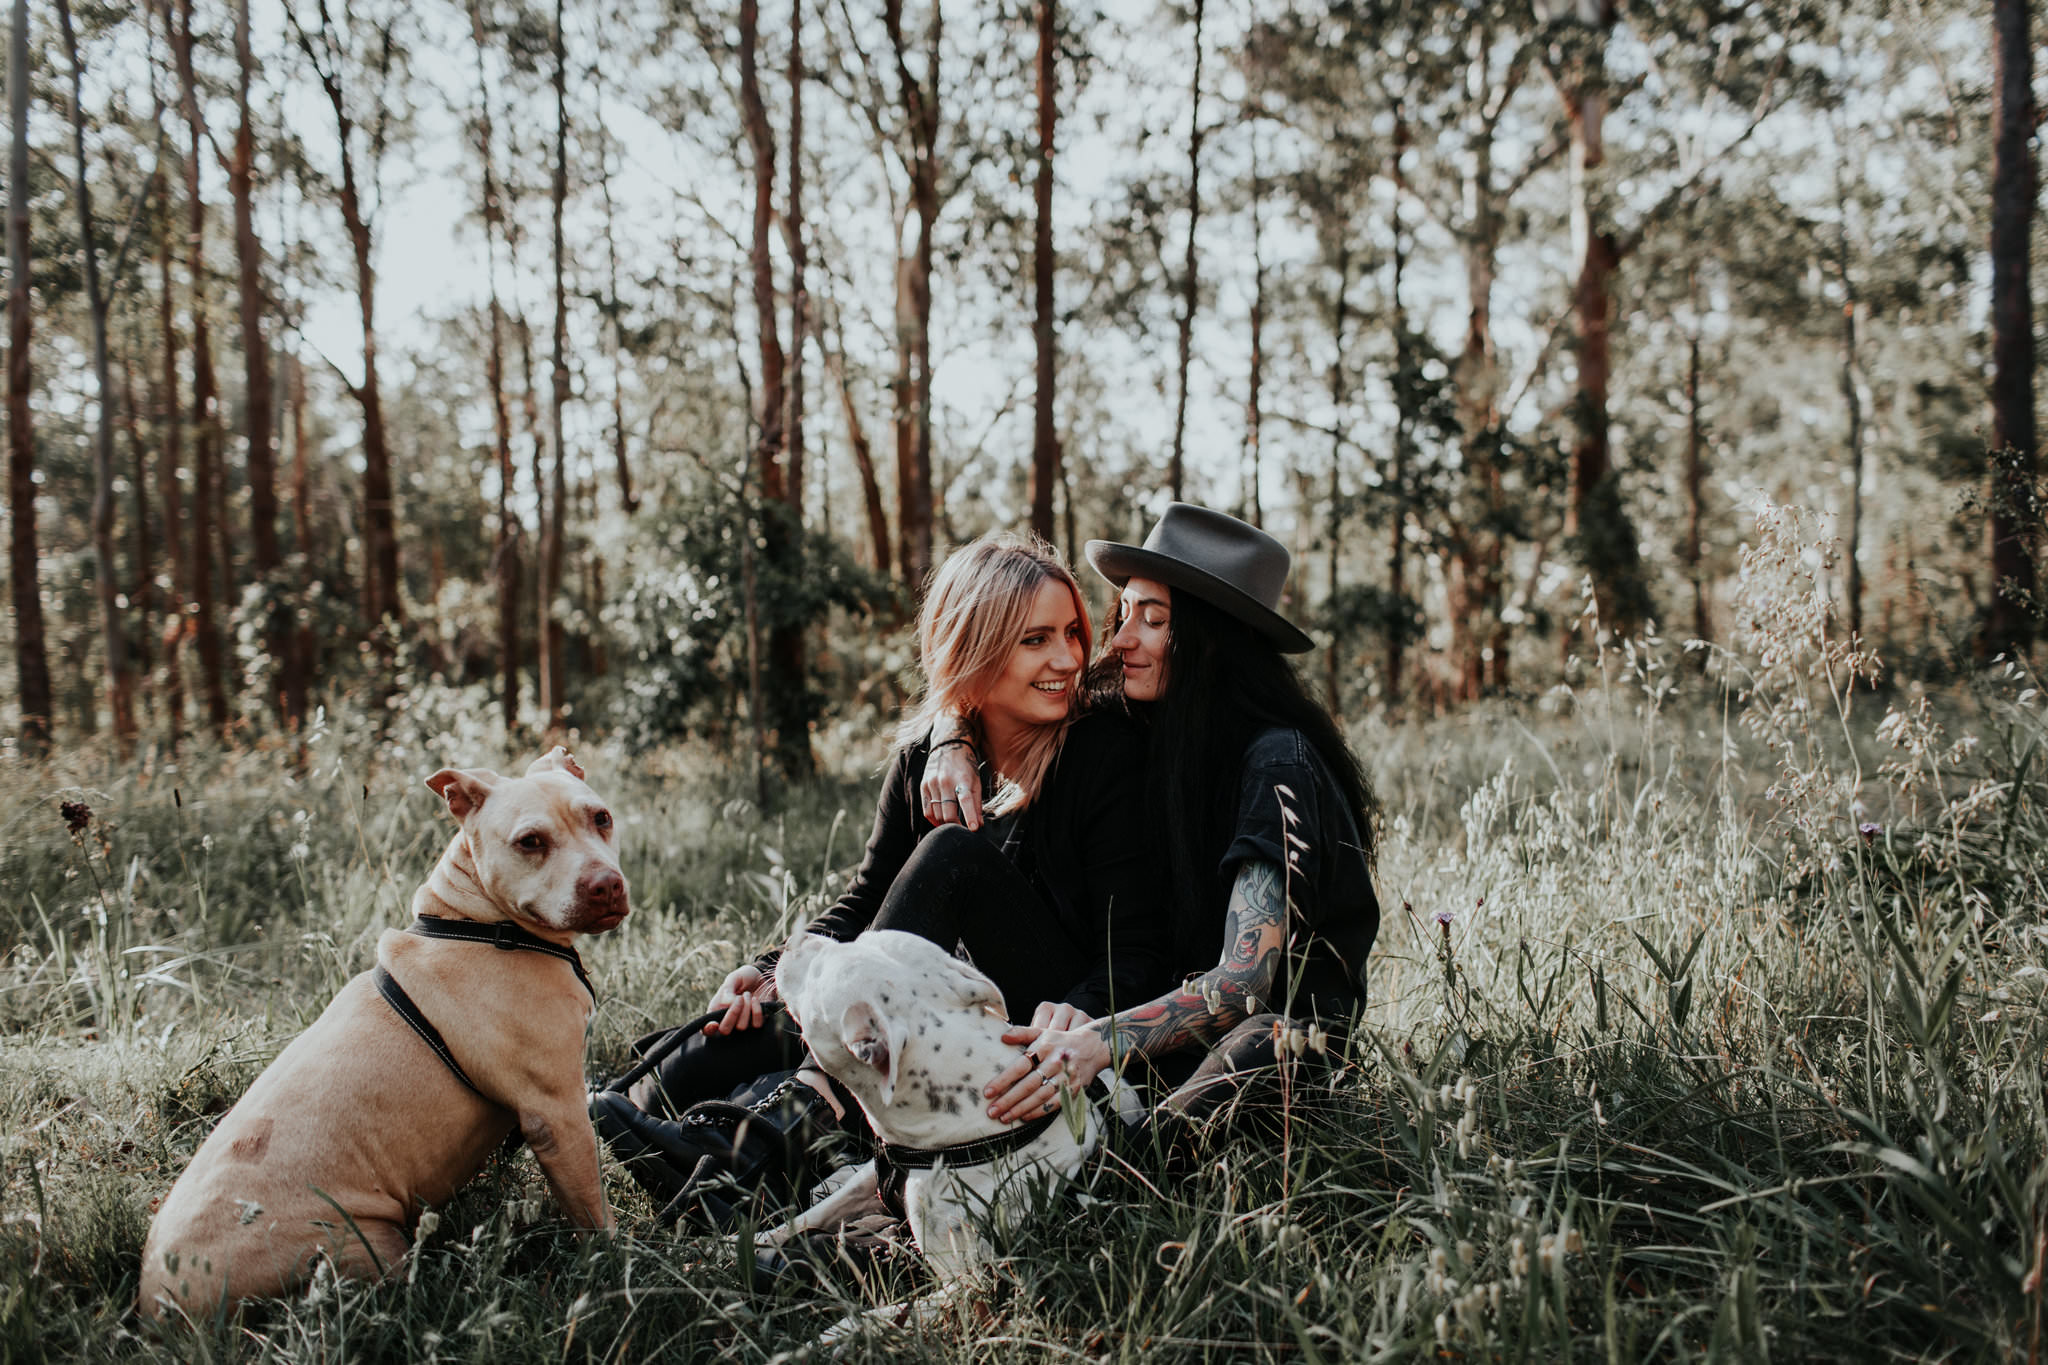 Rainbow Love Shoot SSM Sydney Australia Marriage Equality Couple Session Dogs